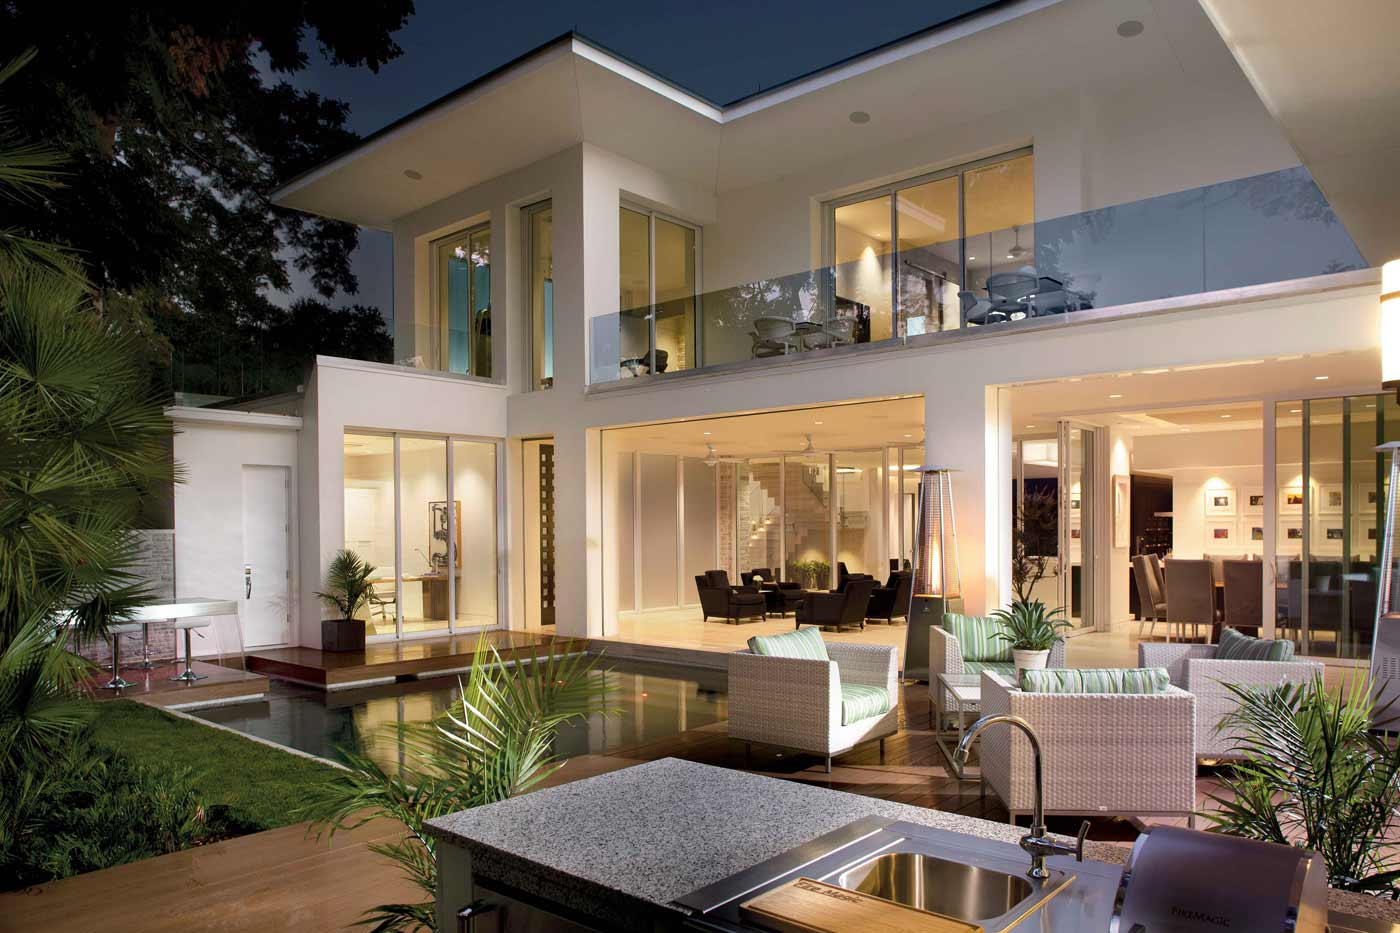 Outdoor Spaces Enhance Entertaining   Phil Kean Design Group on Indoor Outdoor Living Spaces id=86639